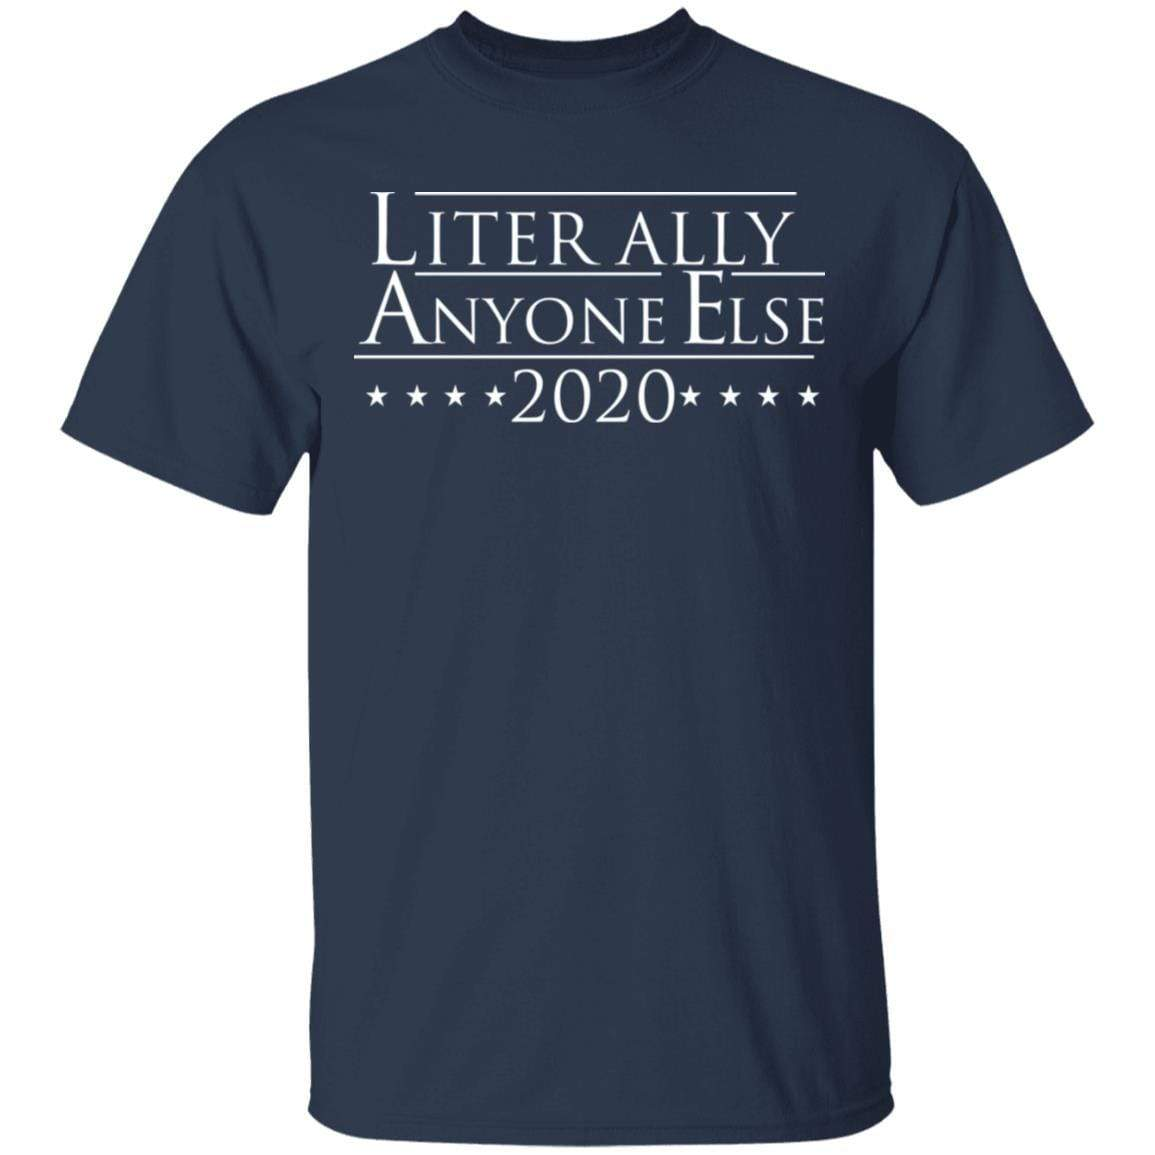 Literally Anyone Else 2020 T-Shirts, Hoodies 1049-9966-88765989-48248 - Tee Ript